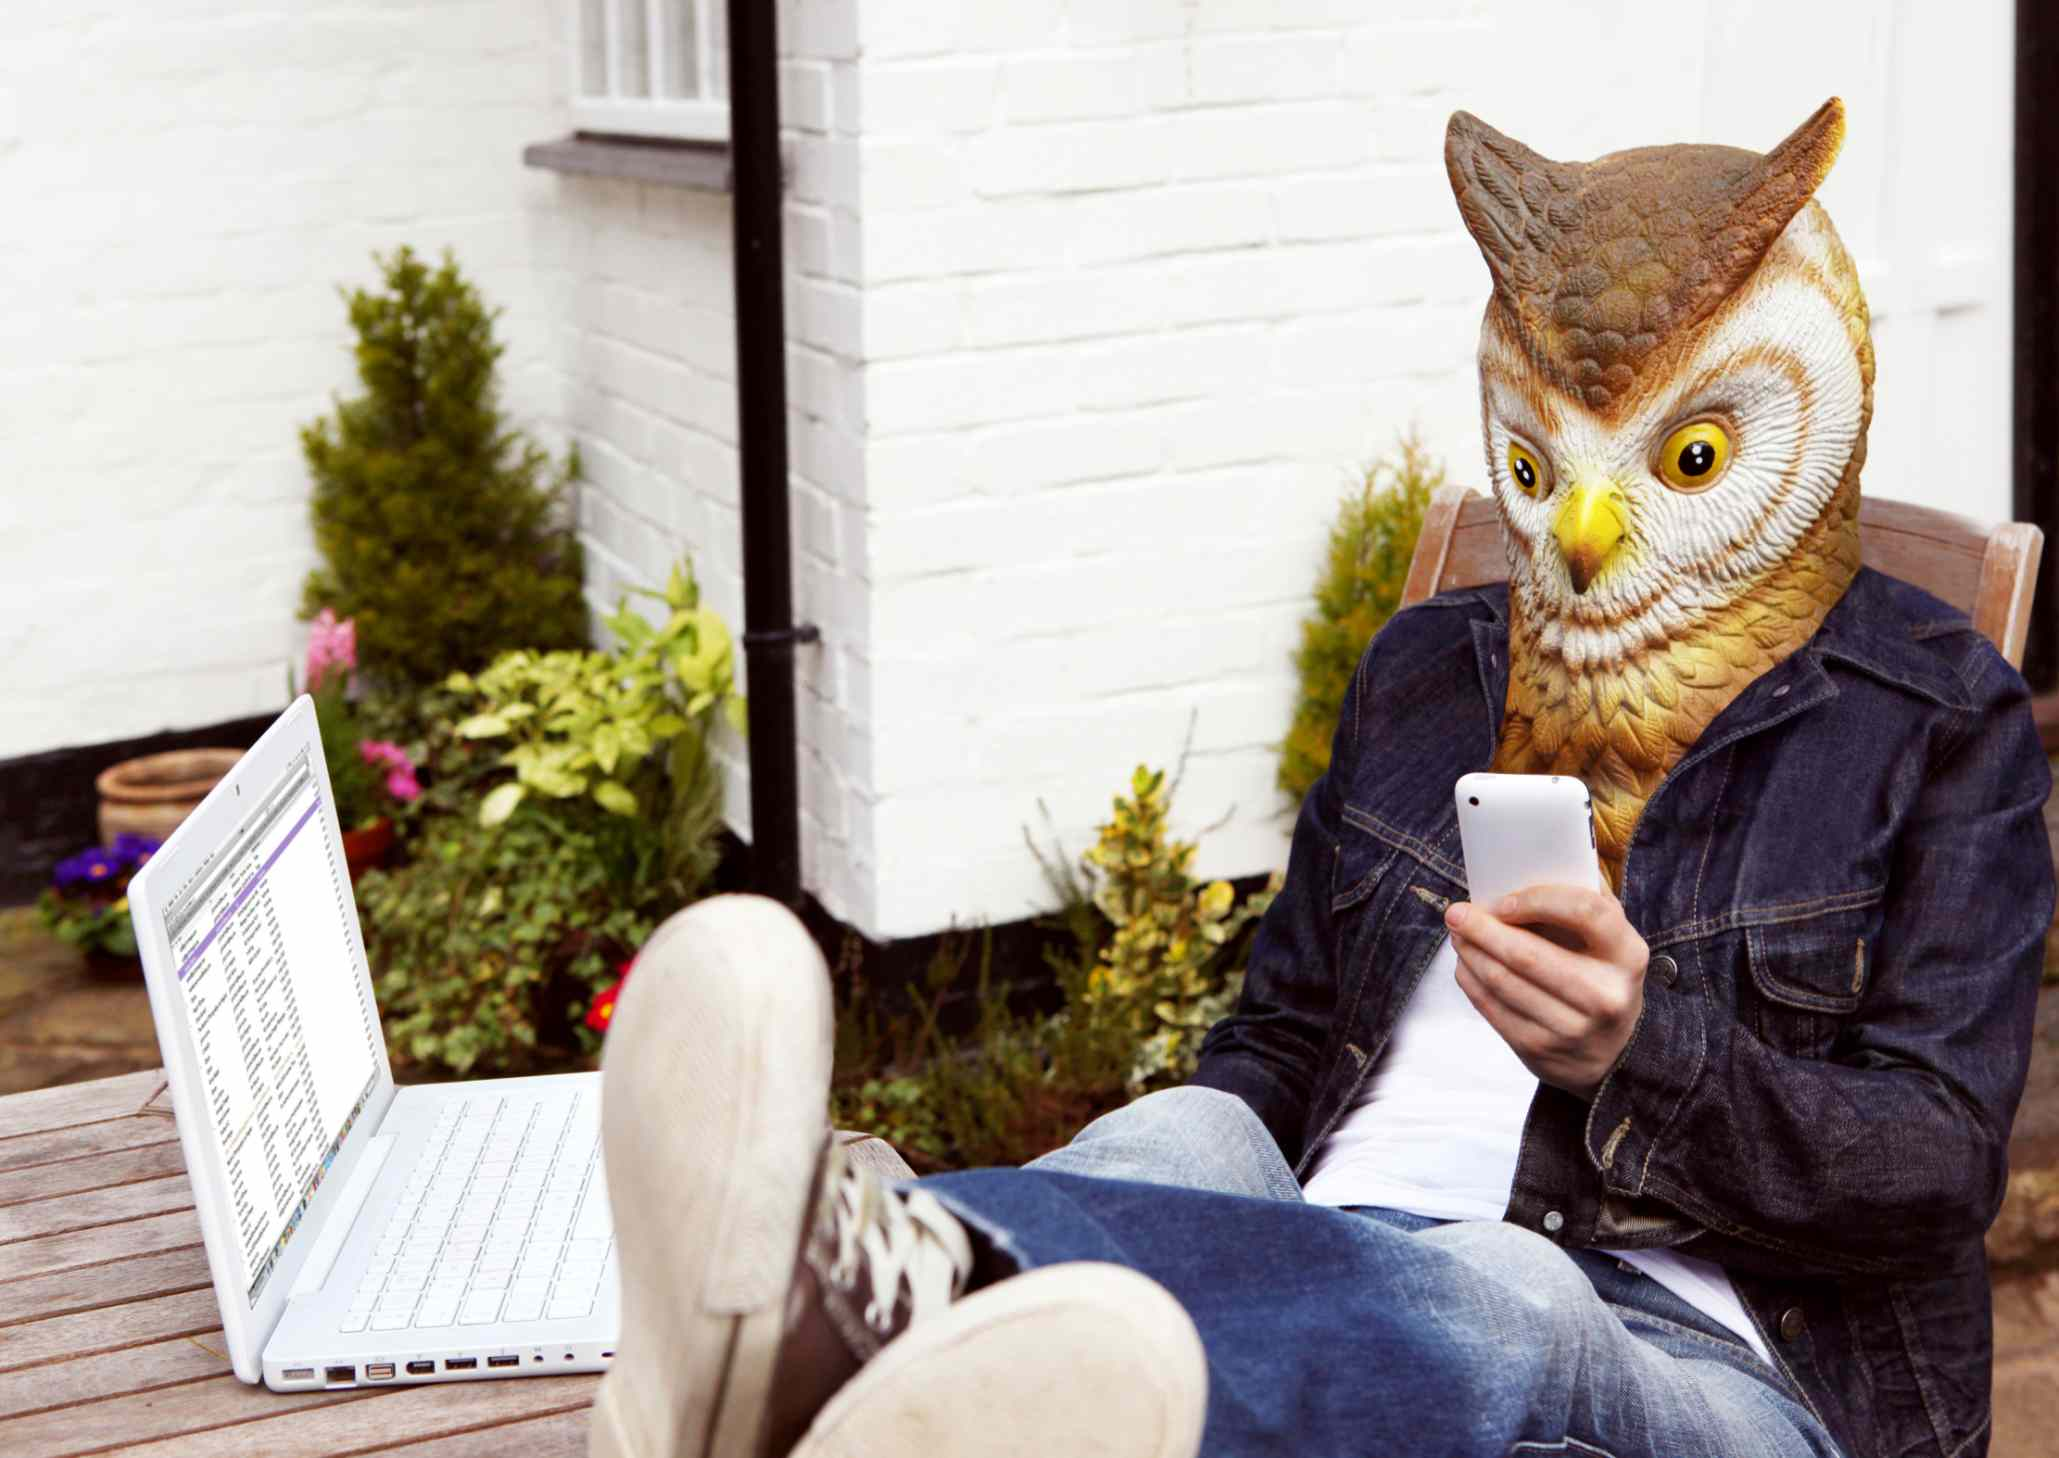 Person in Owl Mask Using Smartphone